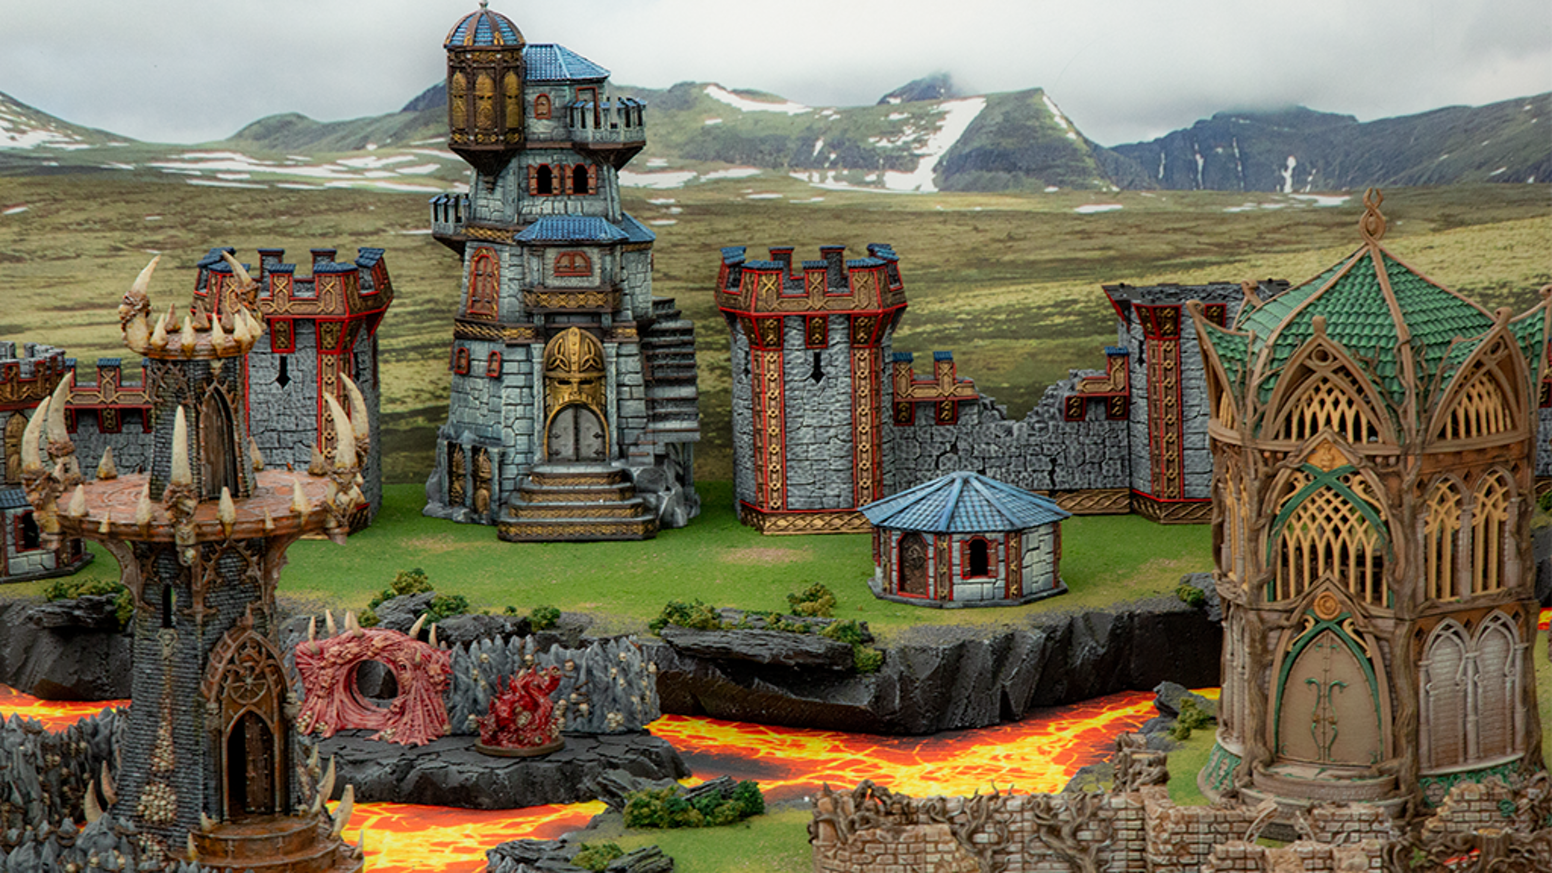 Dwarves, Elves & Demons: 3D printable Fantasy Terrain for RPG and Wargames